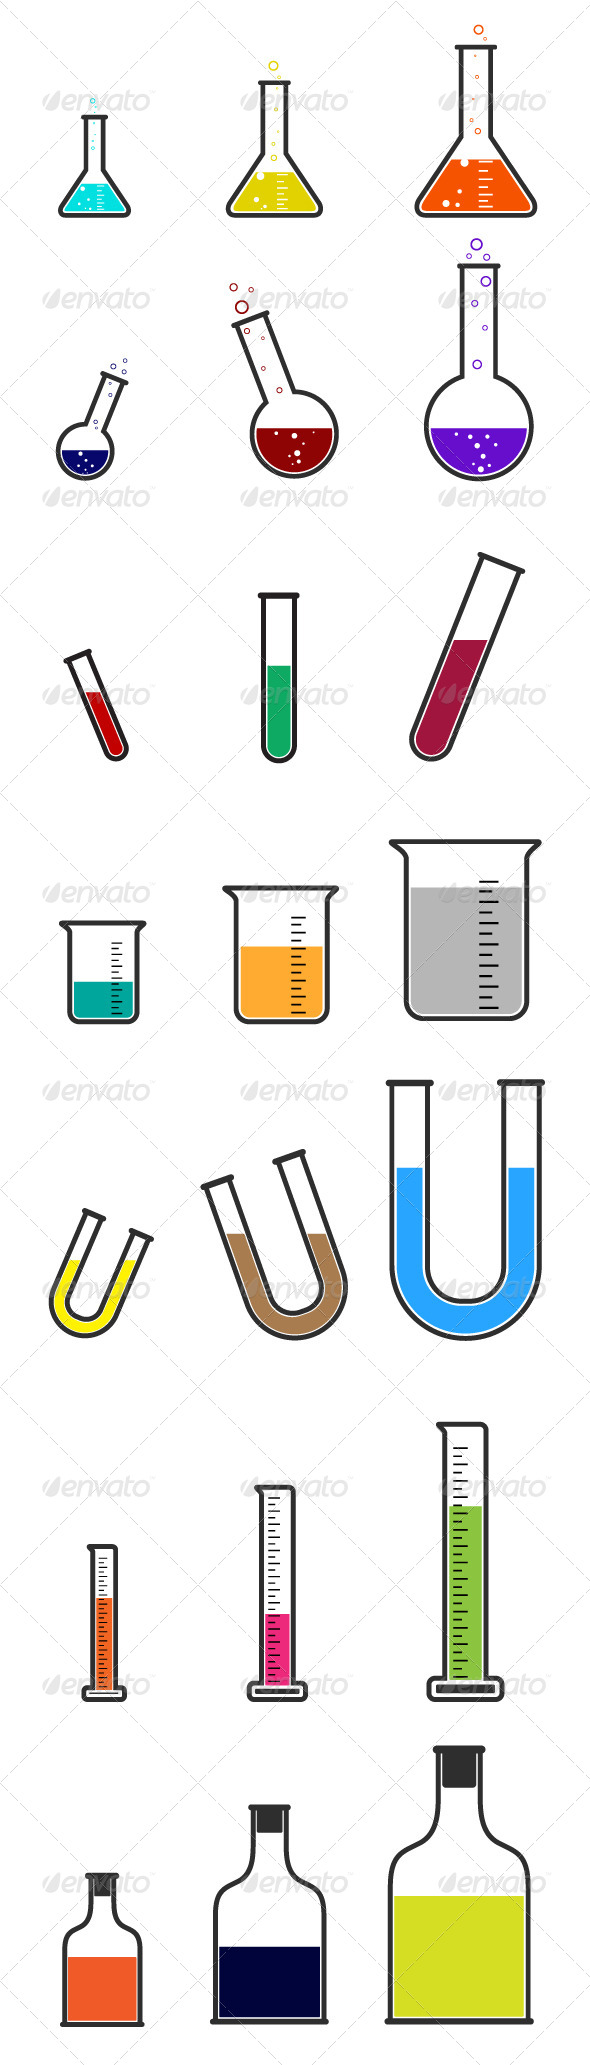 GraphicRiver Laboratory Equipmet Icons 7209697